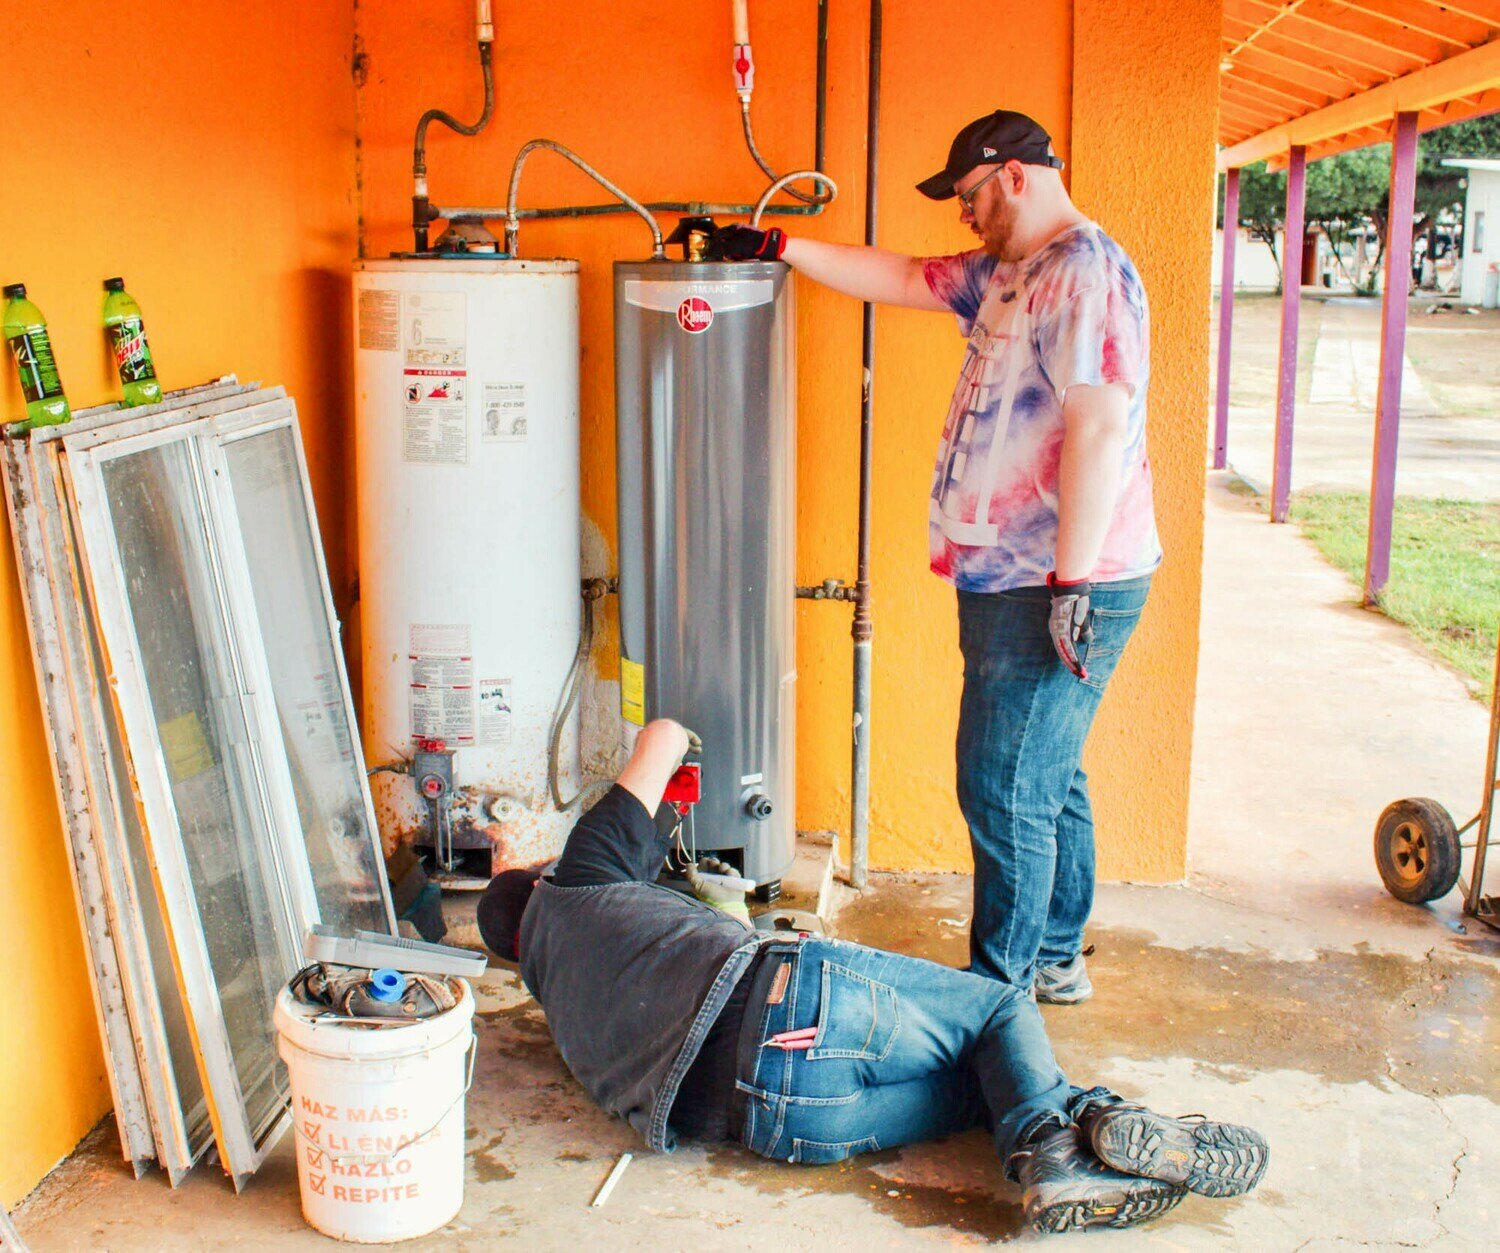 Replace Unsafe Water Heater